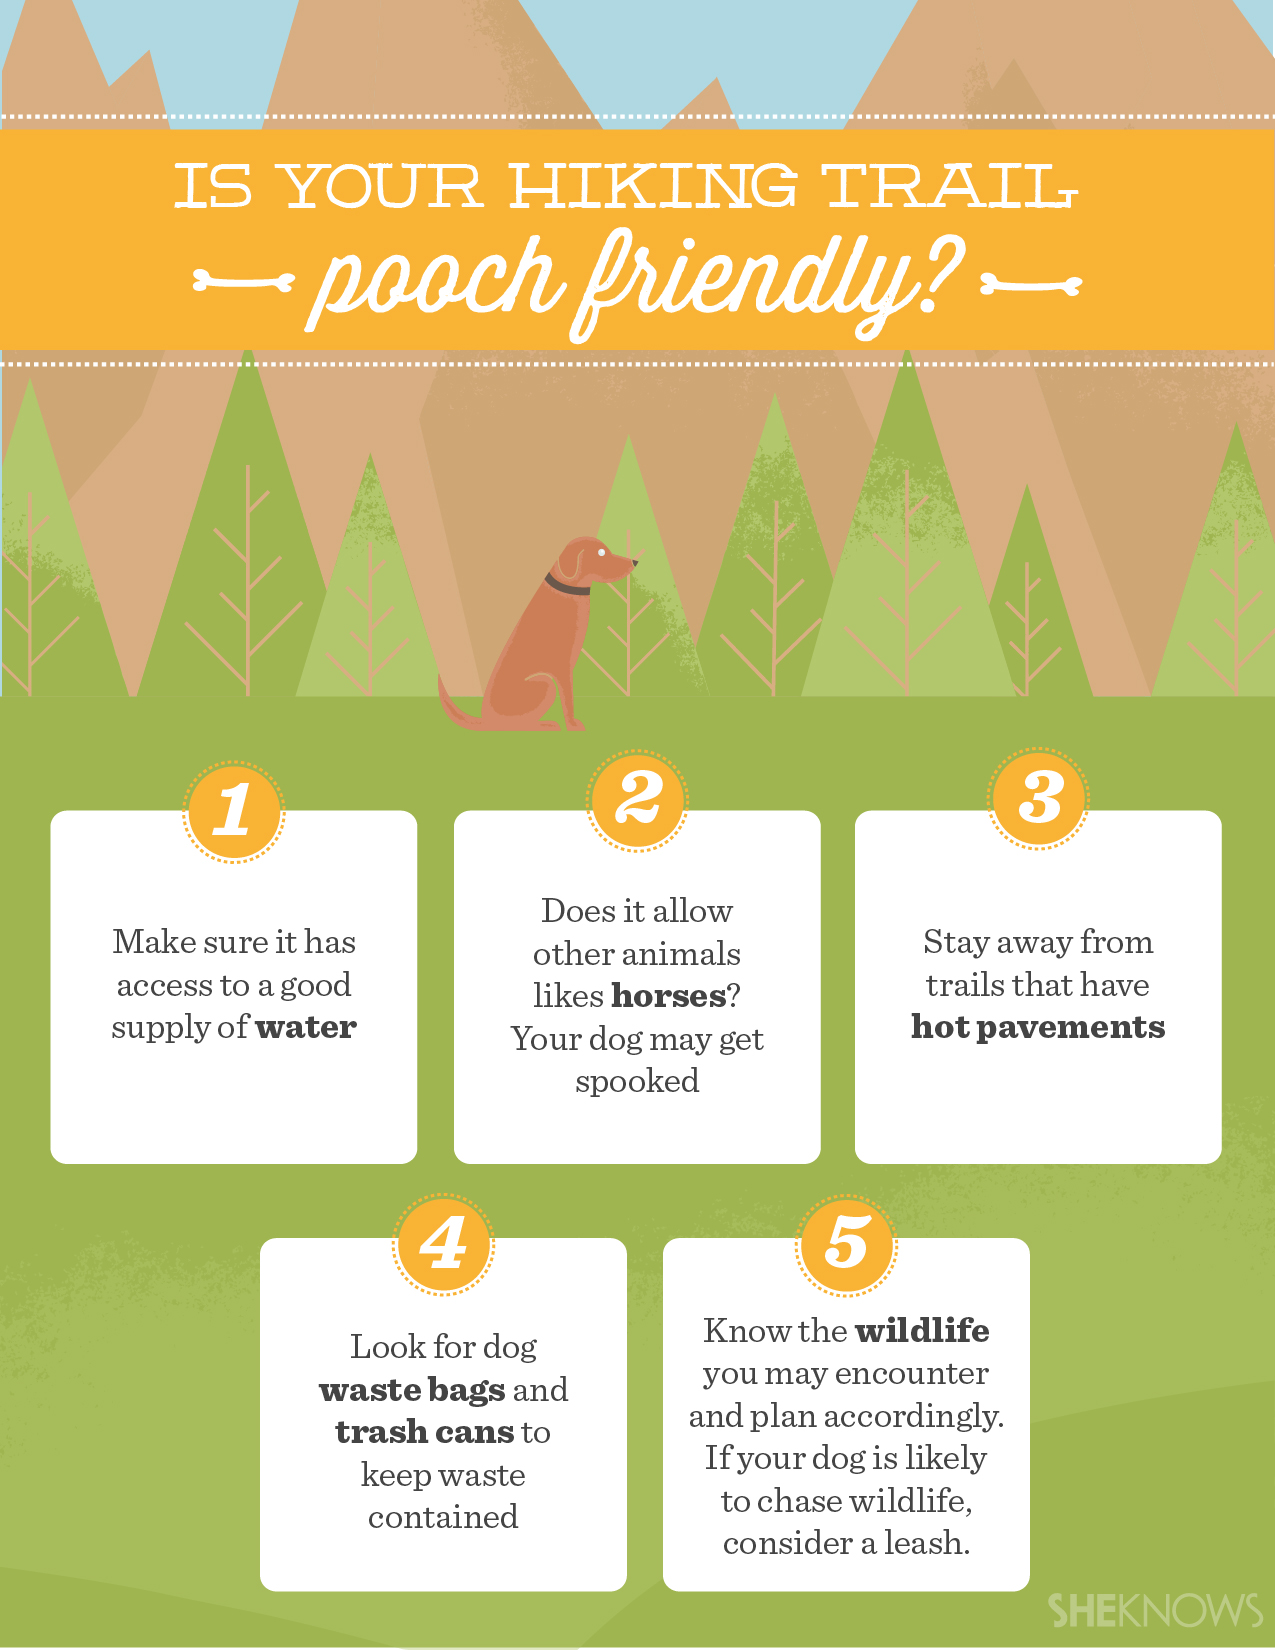 Is your trail pooch-friendly?